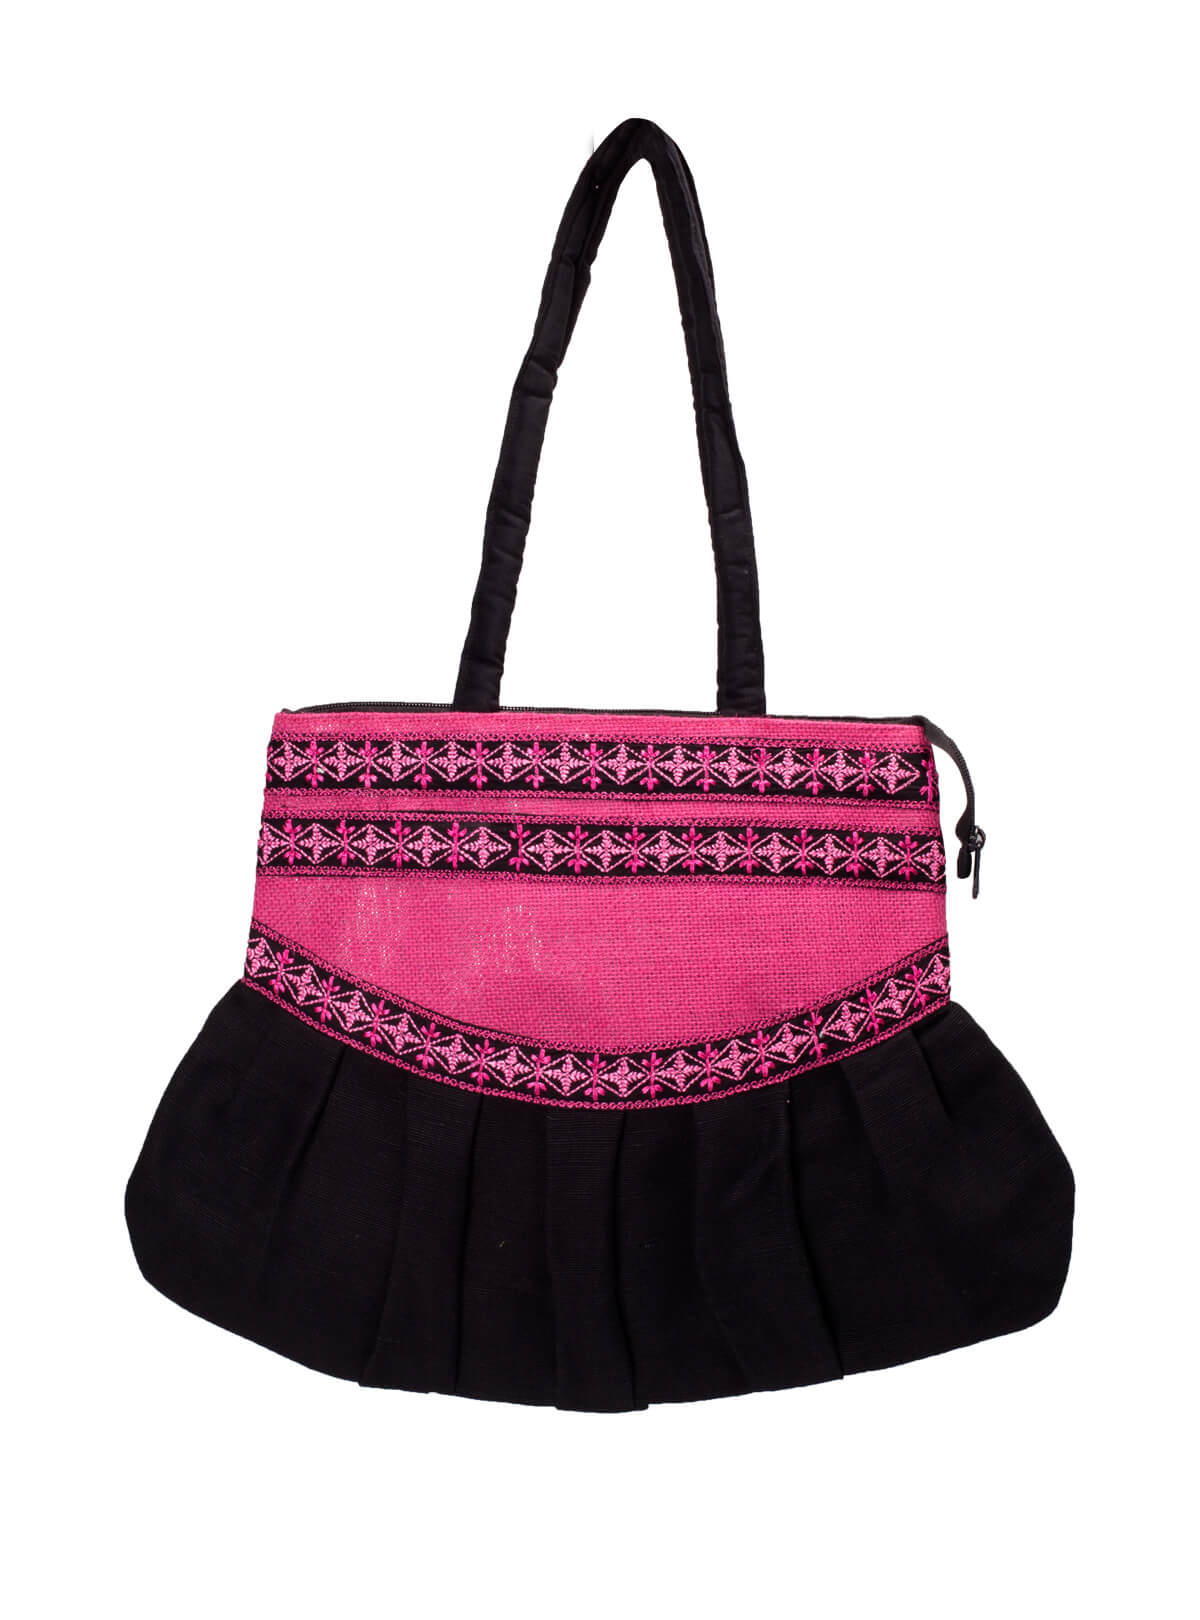 Black & Pink Cotton Embroidered Ladies Bag